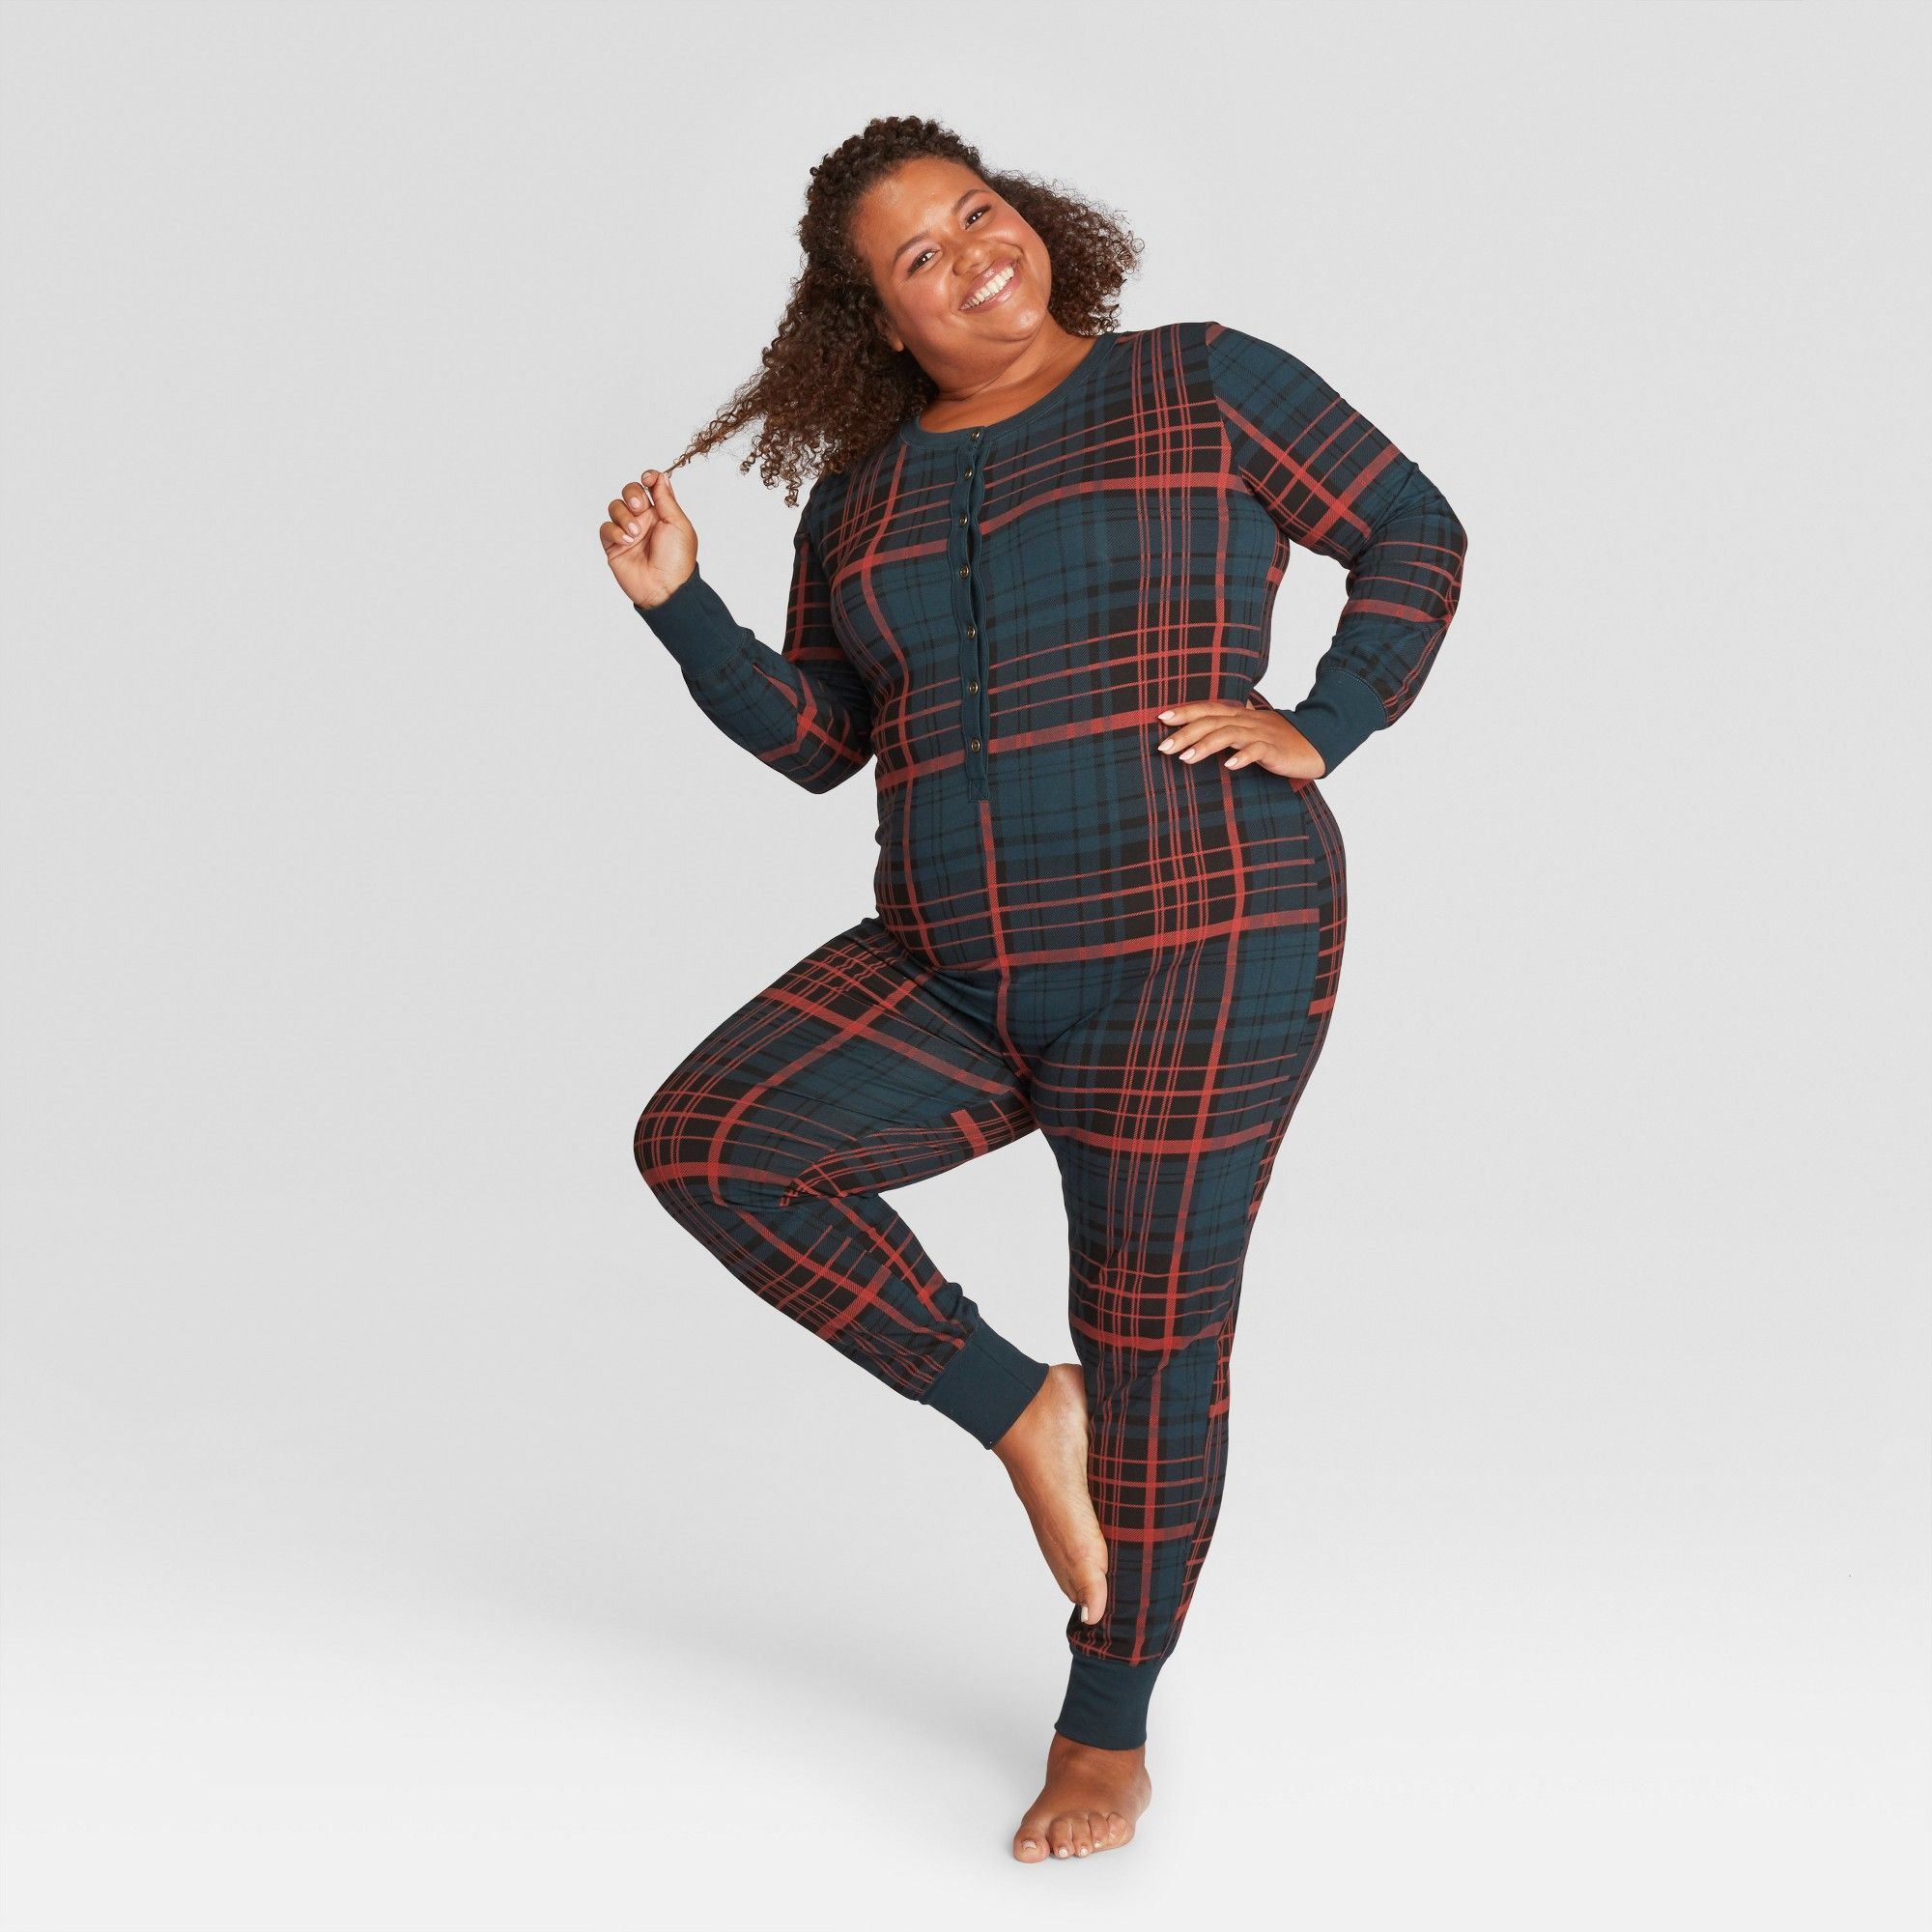 806fe79a26 Women s Plaid Holiday Pajama Union Suit - Blue 3X - Hearth   Hand with  Magnolia